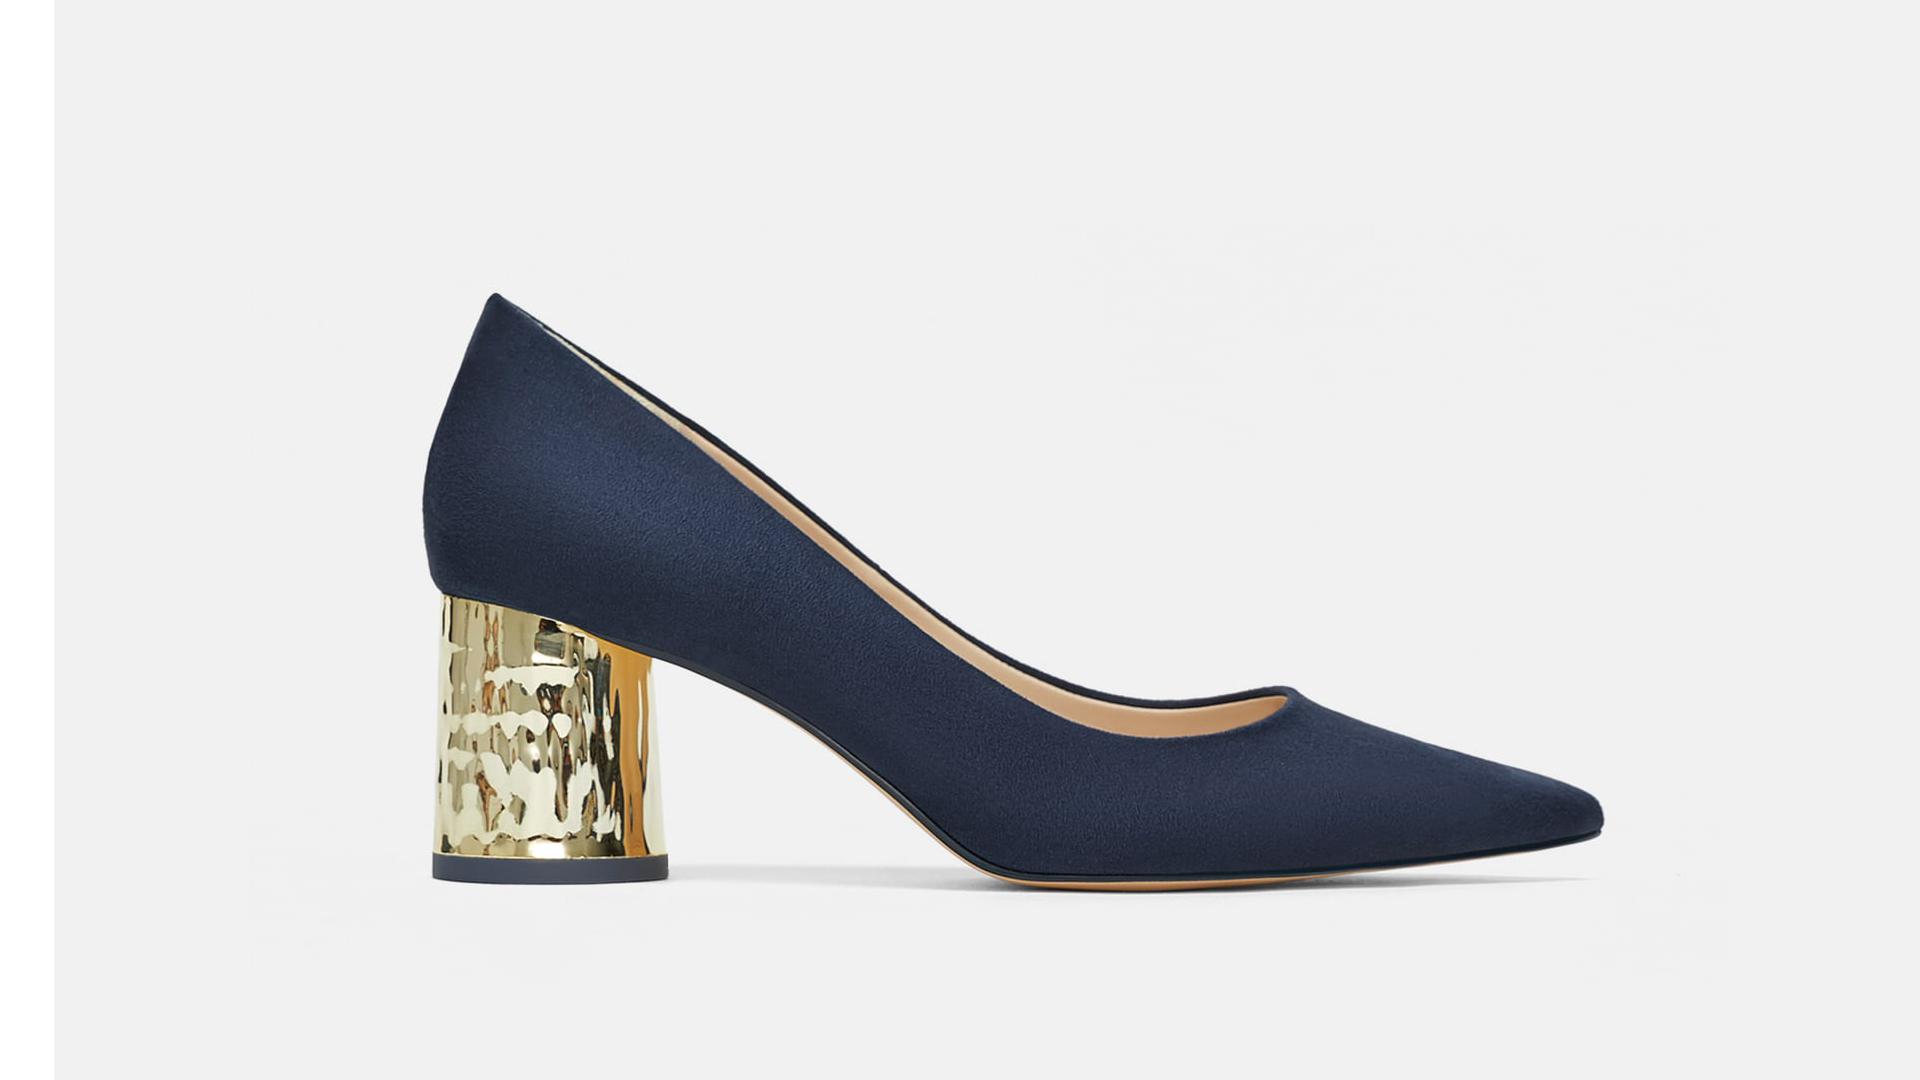 Navy and Gold Pumps from Zara